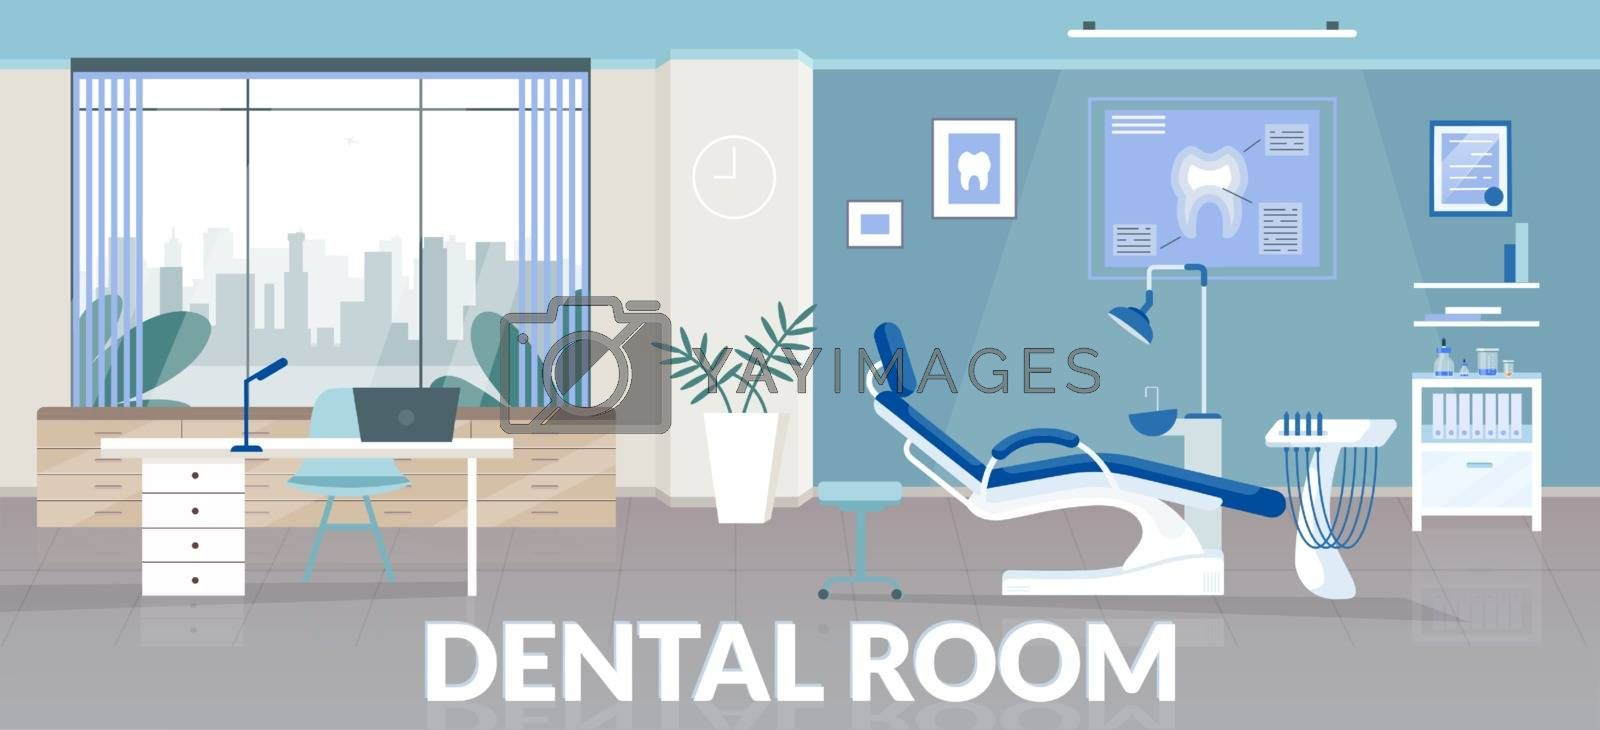 Dental room banner flat vector template. Stomatological clinic brochure, booklet one page concept design with cartoon illustrations. Odontology office, professional teeth treatment flyer, leaflet